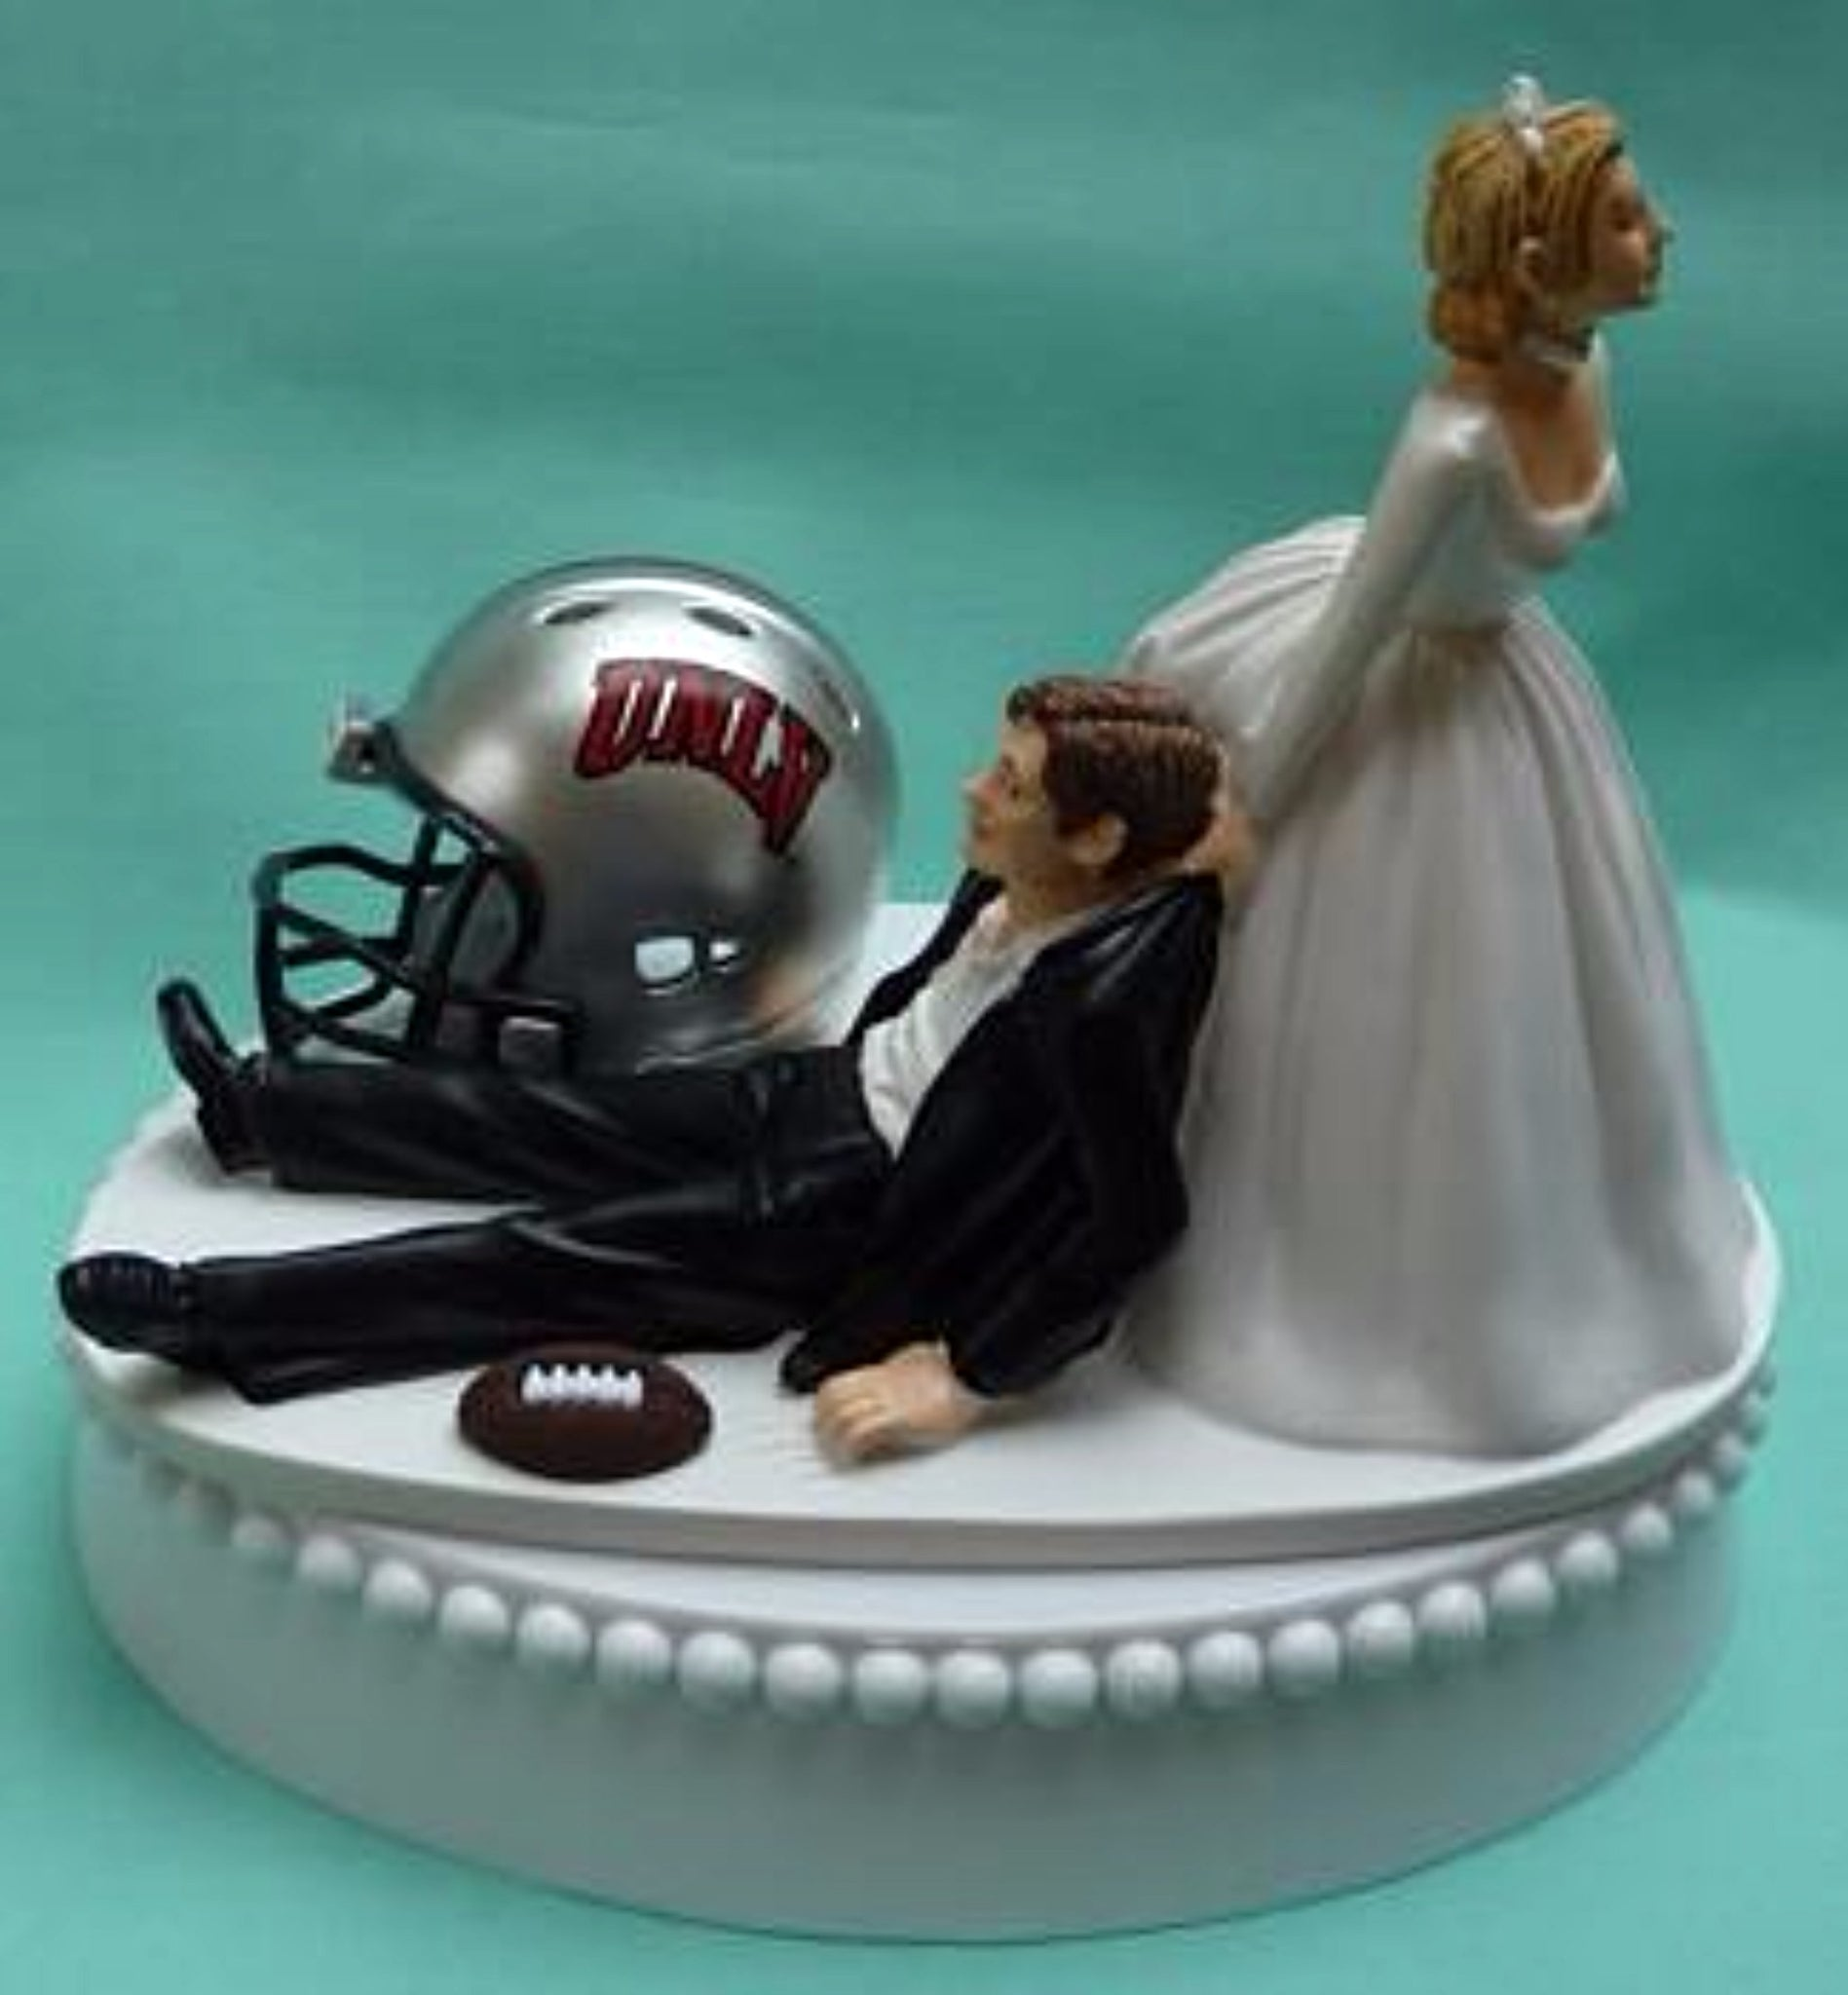 University of Nevada Las Vegas wedding cake topper UNLV Rebels football groom's cake top humorous bride dragging groom funny reception gift Fun Wedding Things